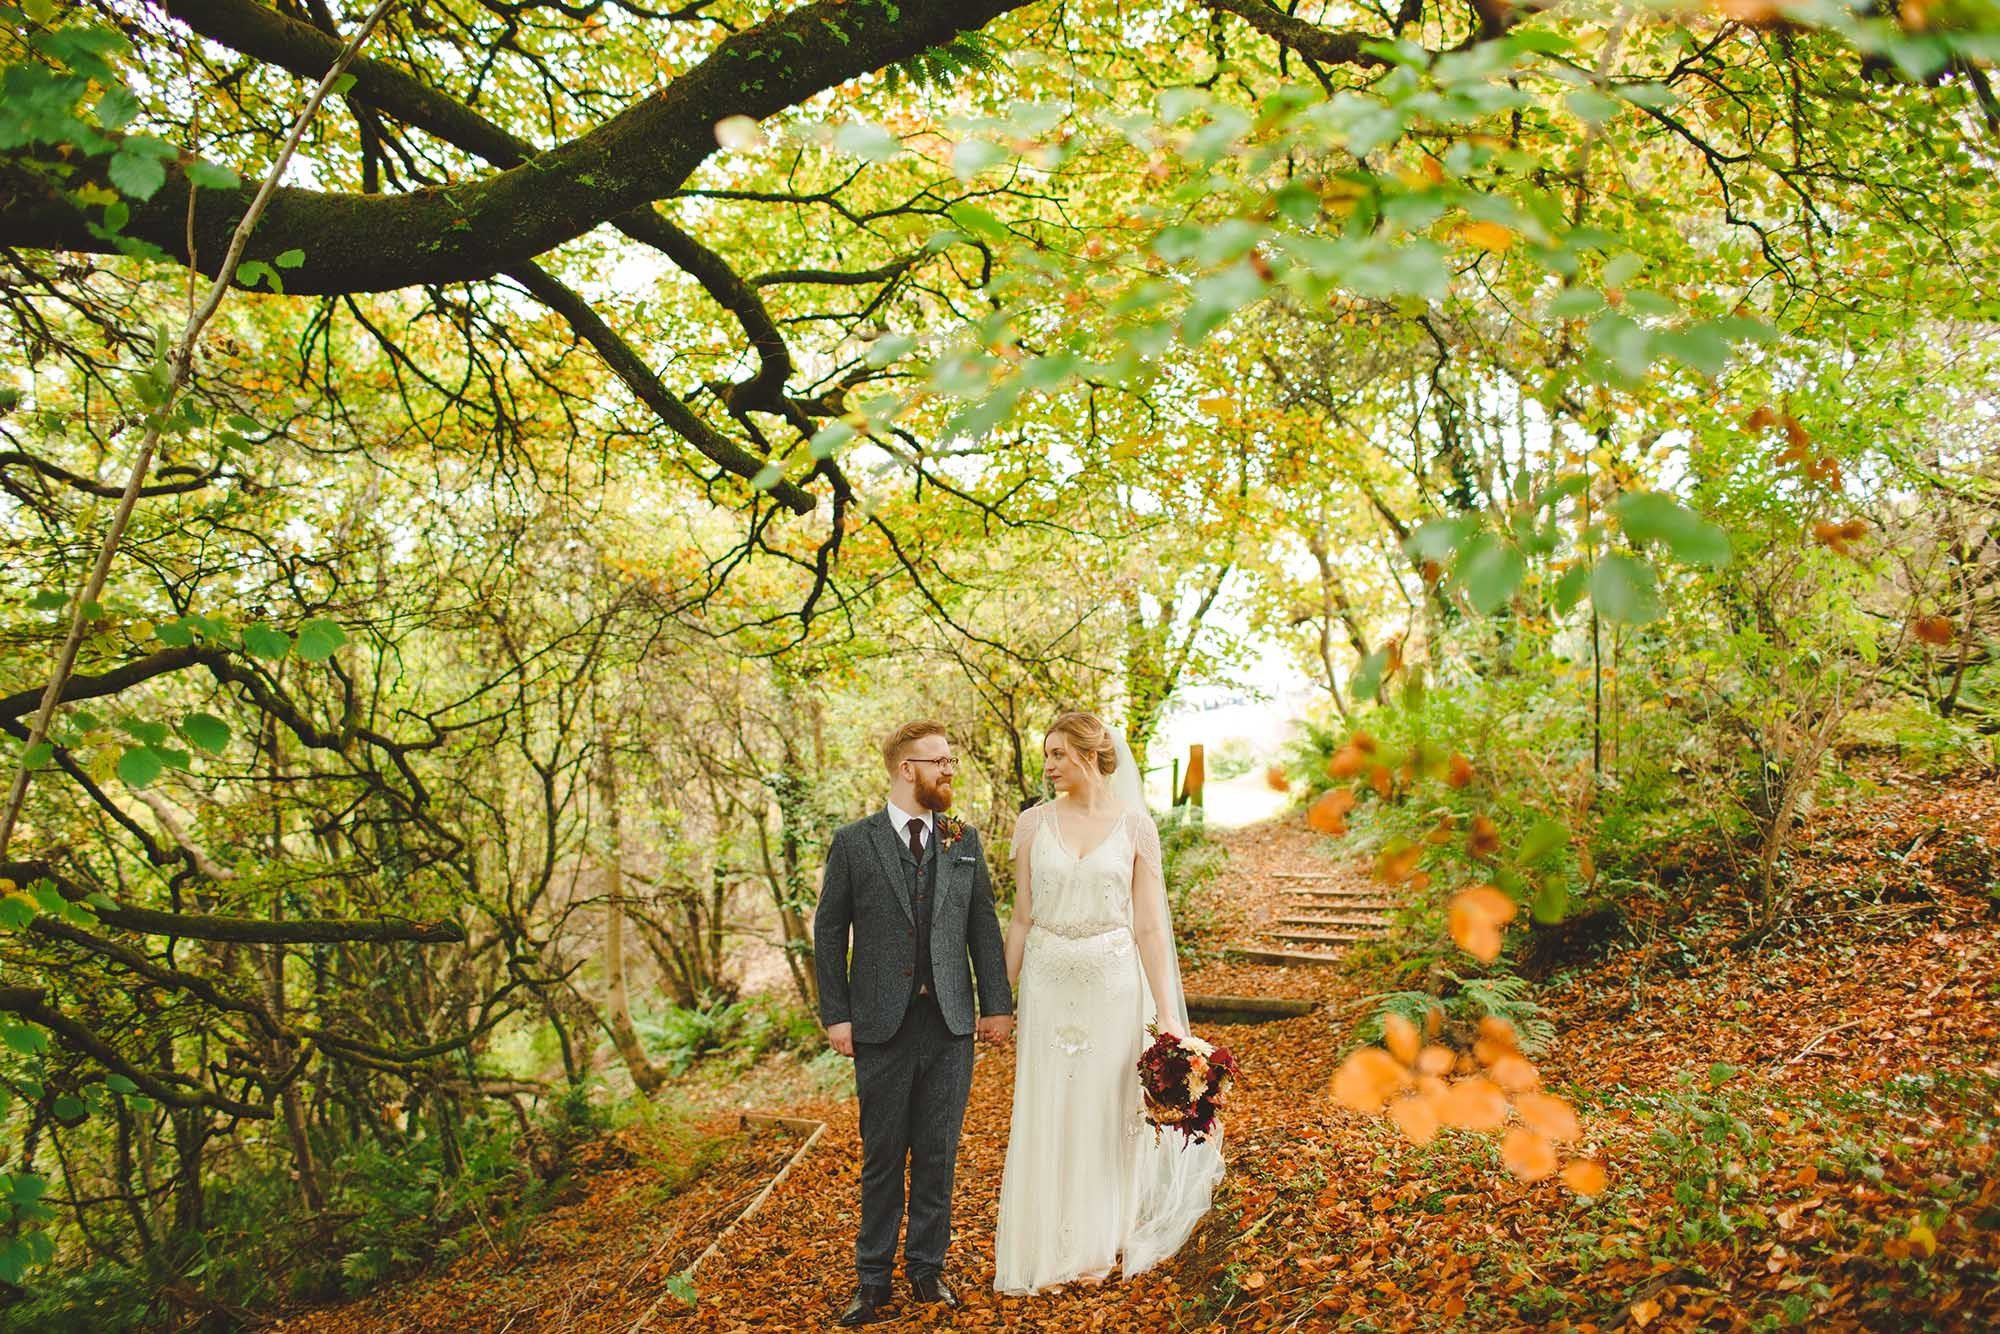 The Green Cornwall Autumn Wedding